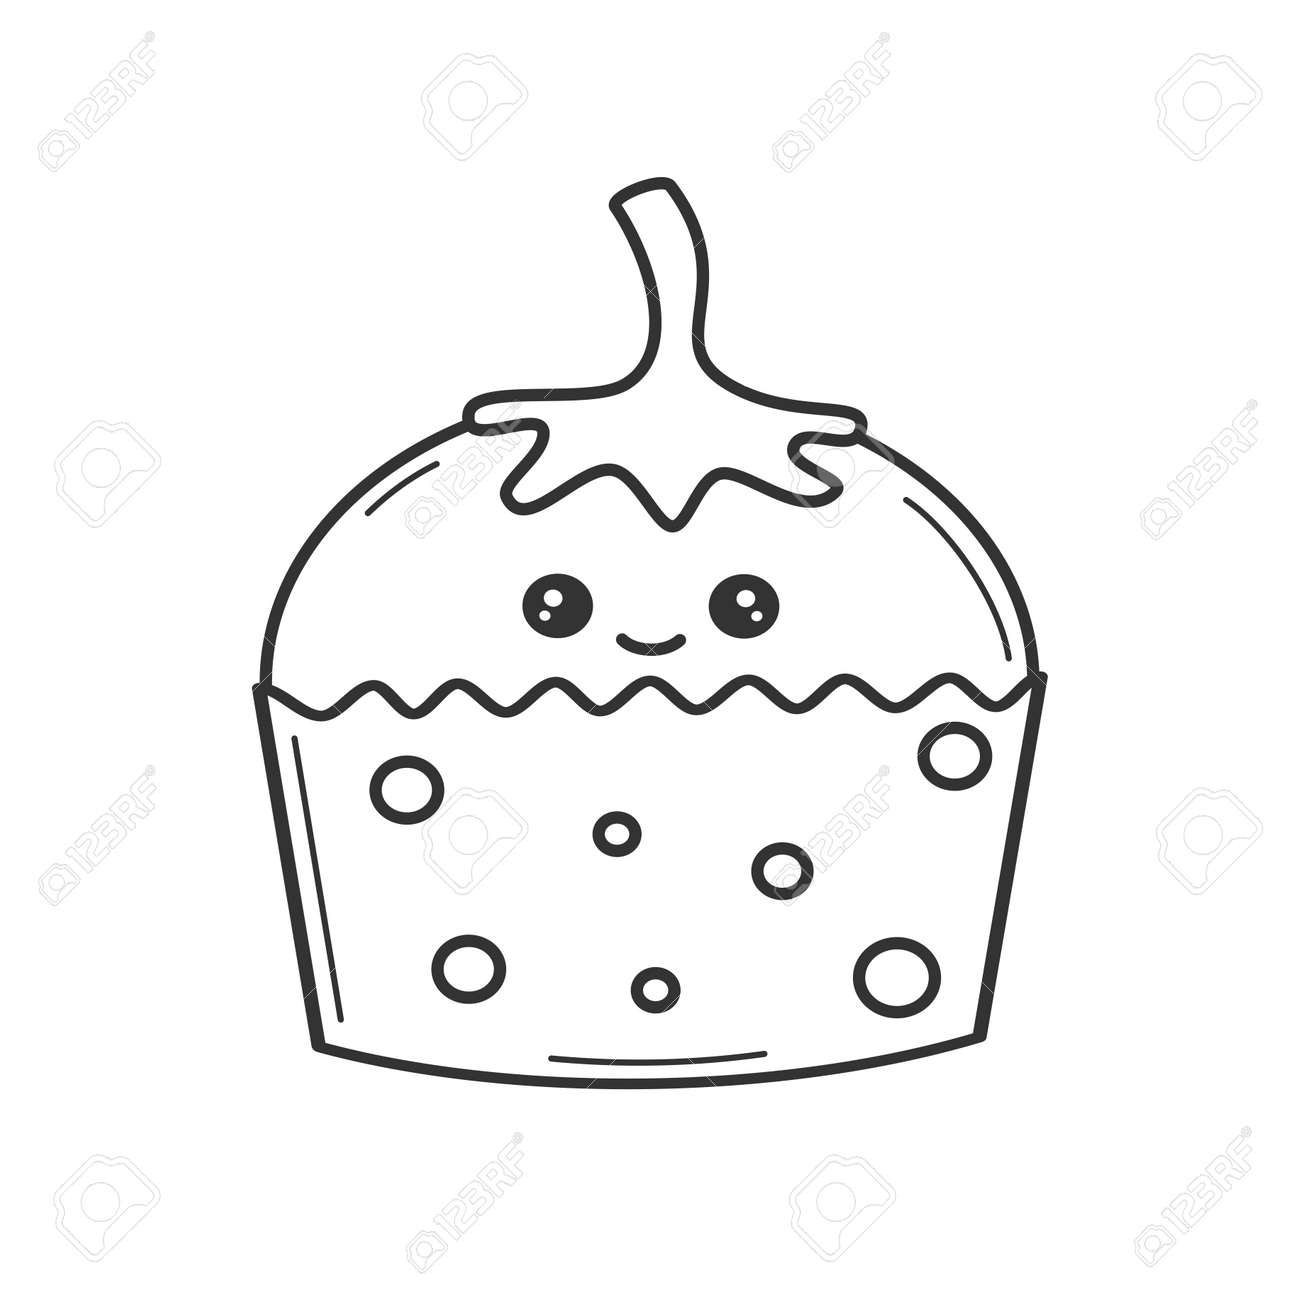 Black And White Cartoon Illustration Of Spooky Halloween Pumpkin.. Royalty  Free Cliparts, Vectors, And Stock Illustration. Image 22300354.